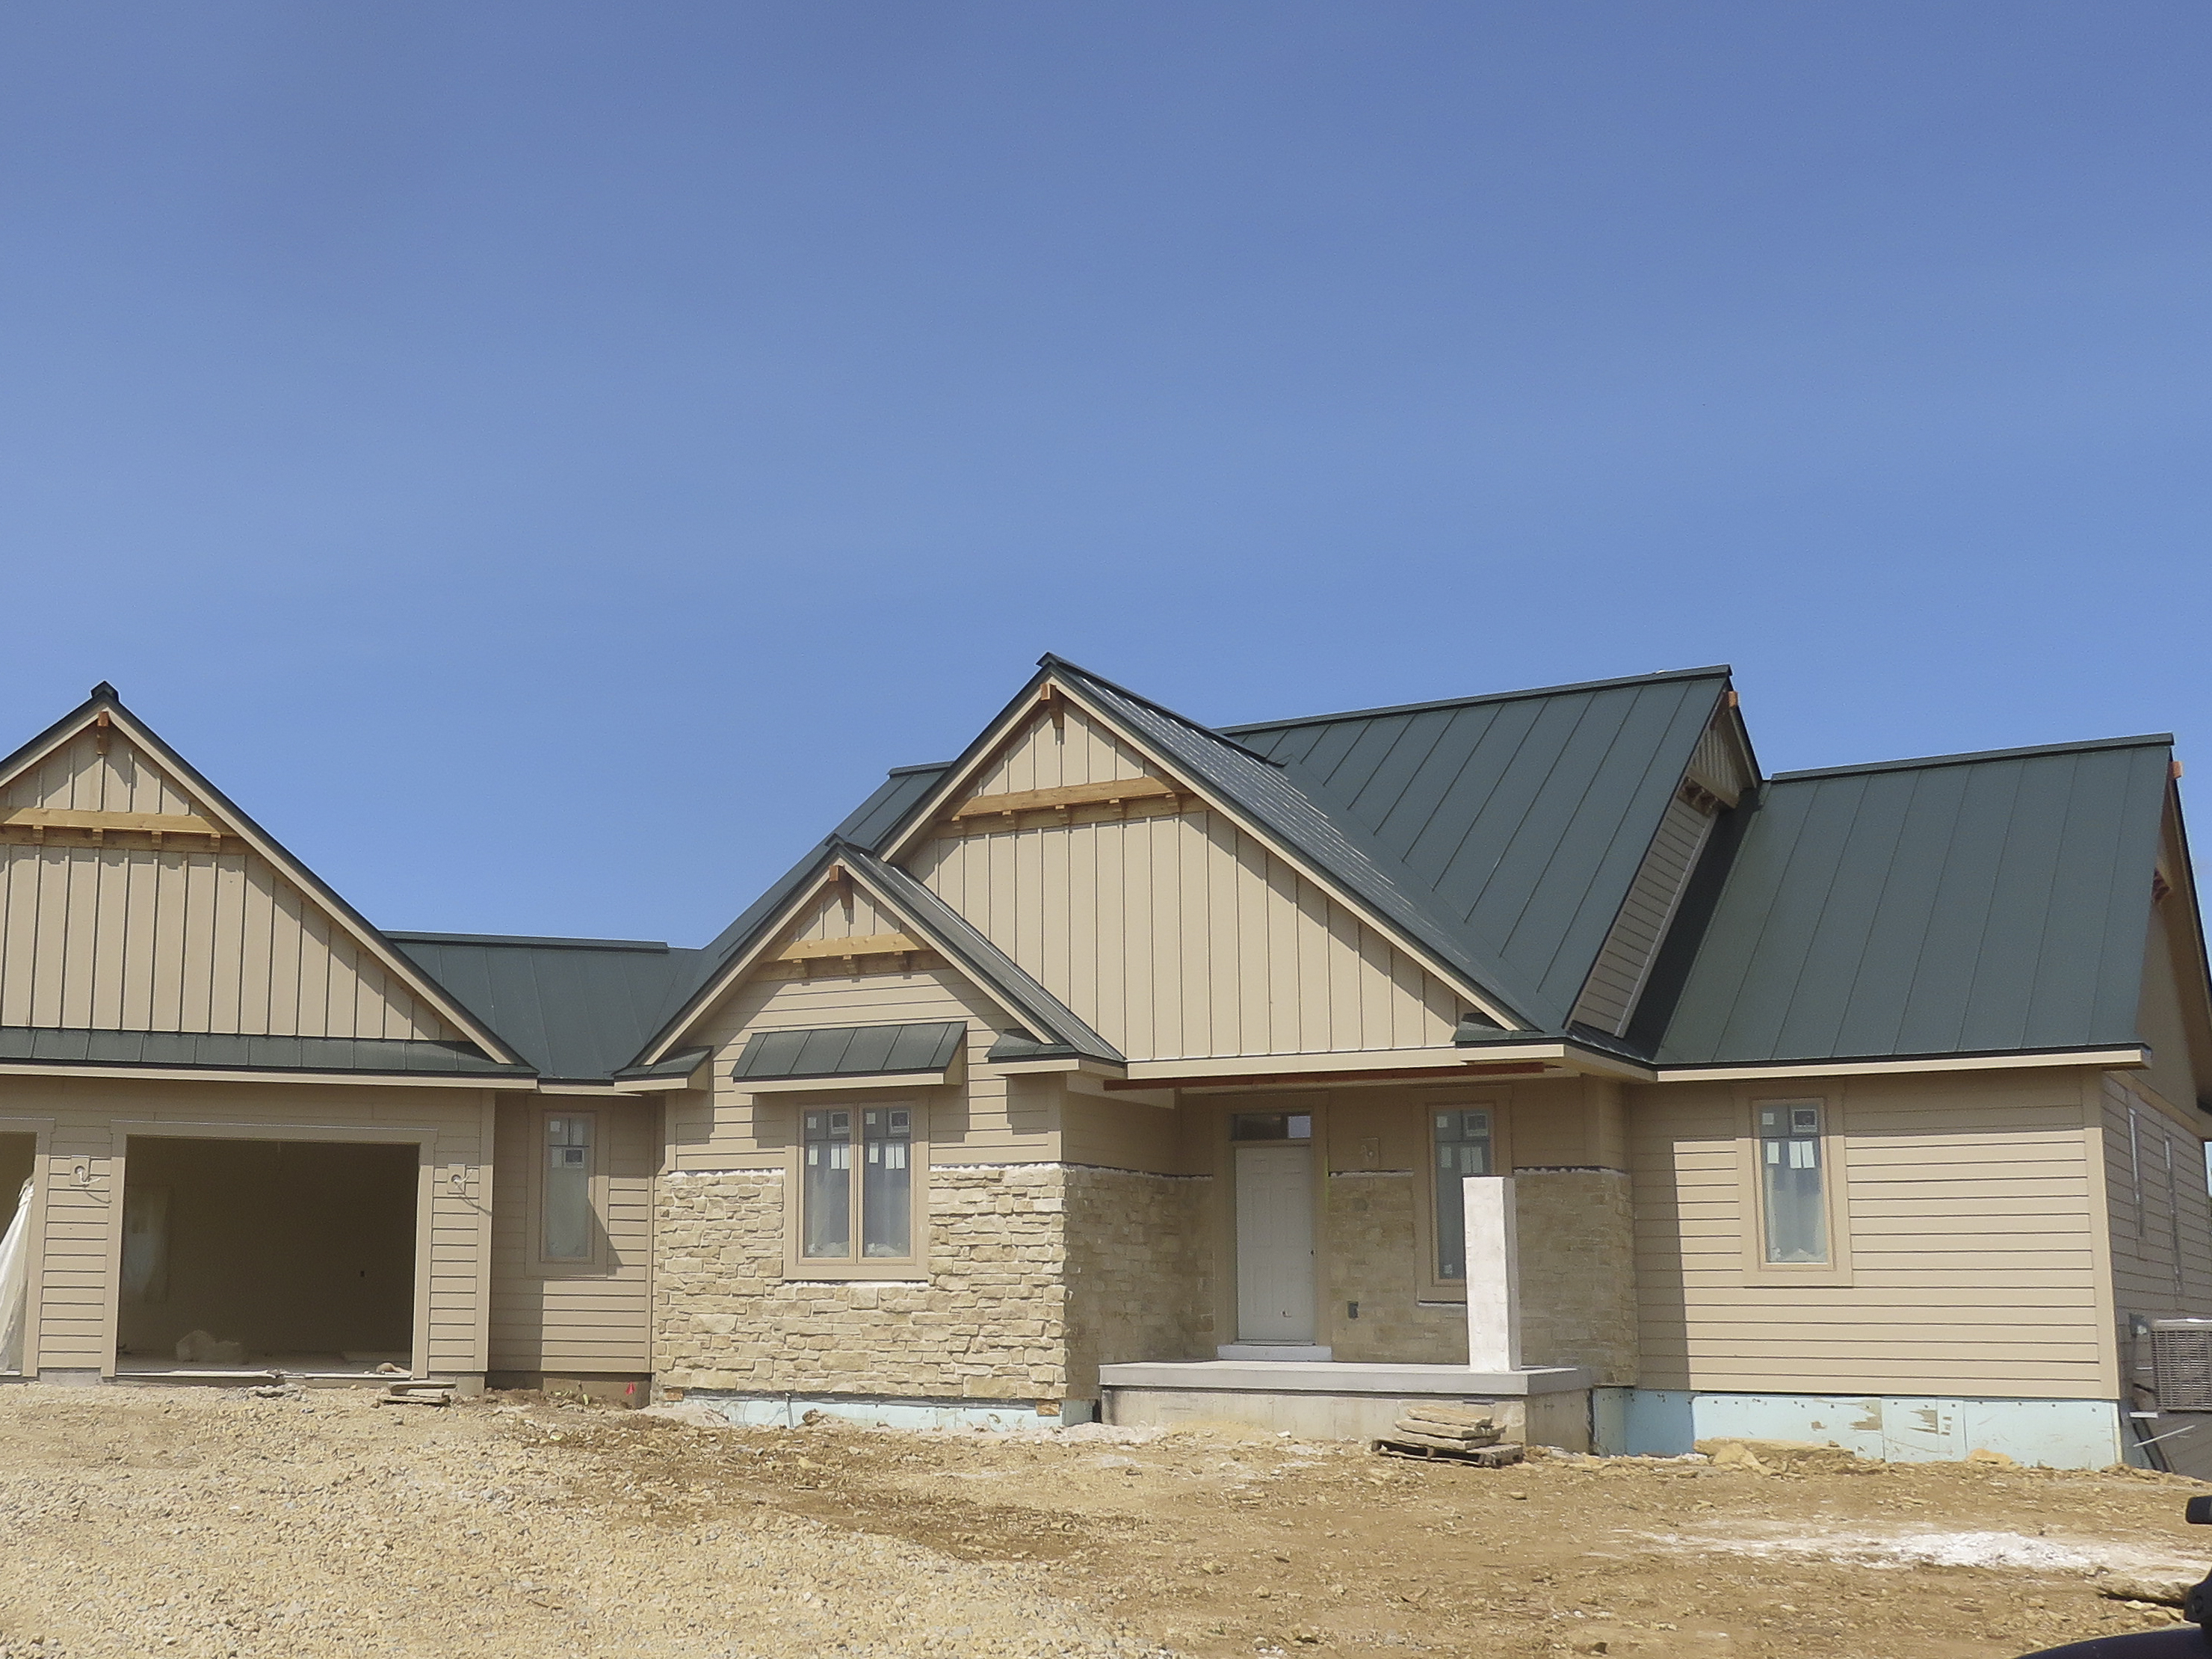 standing seam sheet metal roofing green dark hartford house residential wisconsin iowa minnesota illinois north dakota